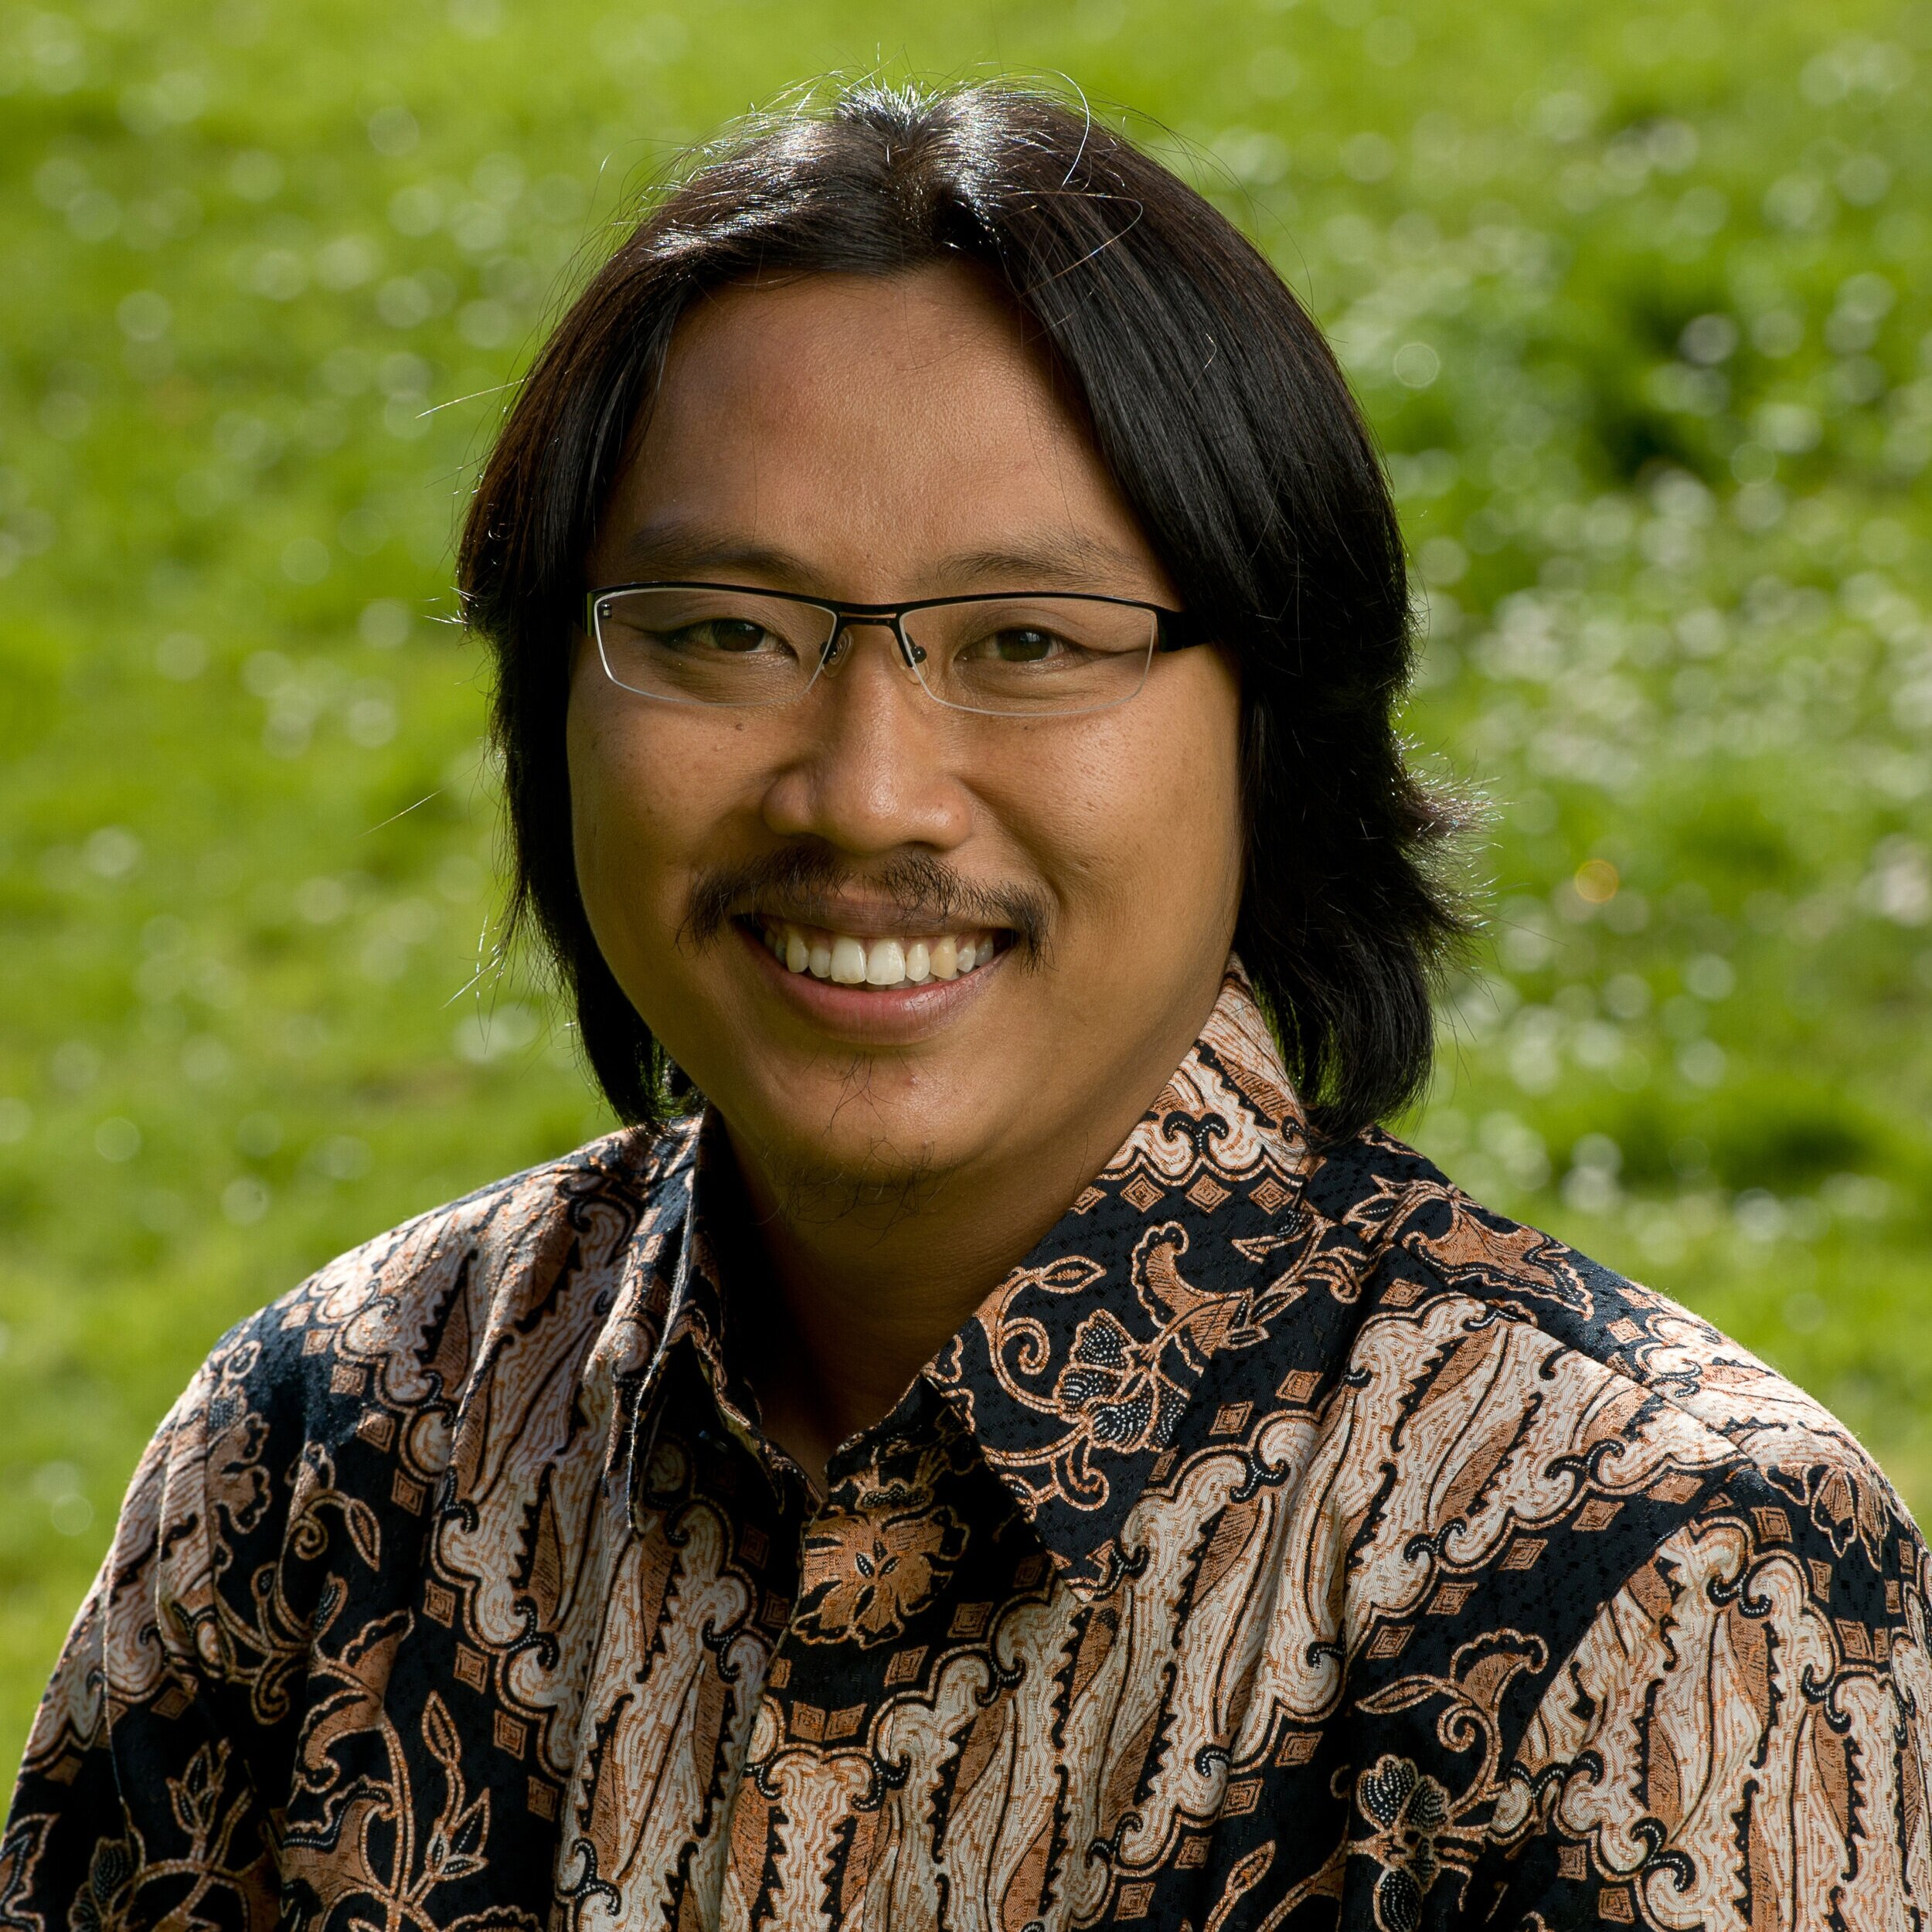 Prigi Arisandi  (Indonesia) grew up near the Surabaya River and remembers seeing it degrade when factories began operating in the region in the early 1980s. He spent much of his childhood exploring the river and went on to study biology and conservation. With a deep commitment to the communities living along the river, he founded Ecological Observation and Wetlands Conservation (Ecoton) while still at university. The organization set out to protect the water resources and wetlands ecosystems of Indonesia.  By 2011, Prigi had inspired thousands of people to become Surabaya's advocates for river protection. He created the first experiential environmental education program in the region, educating the public through river tours that bring children and local residents closer to the river's rich biodiversity and devastating pollution. Prigi's River Detection Program, has been implemented in more than 50 schools, teaches children how to monitor the river's water quality and report their findings to the government. Ecoton also developed a national school network for river protection that promotes student participation in water quality monitoring and is partnering with the East Java Provincial Education Agency to introduce environmental curricula in schools across the province.  In addition, Prigi has personally conducted regular investigations of waste dumping by industry operating on the river, helping to bring about unprecedented public reporting of the pollution activities and their impact on the health of the Surabaya River. In 2007, Arisandi and Ecoton sued East Java's governor and the province's environmental management agency for failing to control water pollution on the Surabaya River. In April 2008, the provincial court issued a precedent-setting environmental decision, ordering the governor to implement water-quality regulations targeted at industry operating along the Surabaya, establishing a maximum daily limit for toxic releases into the river as well as a mon